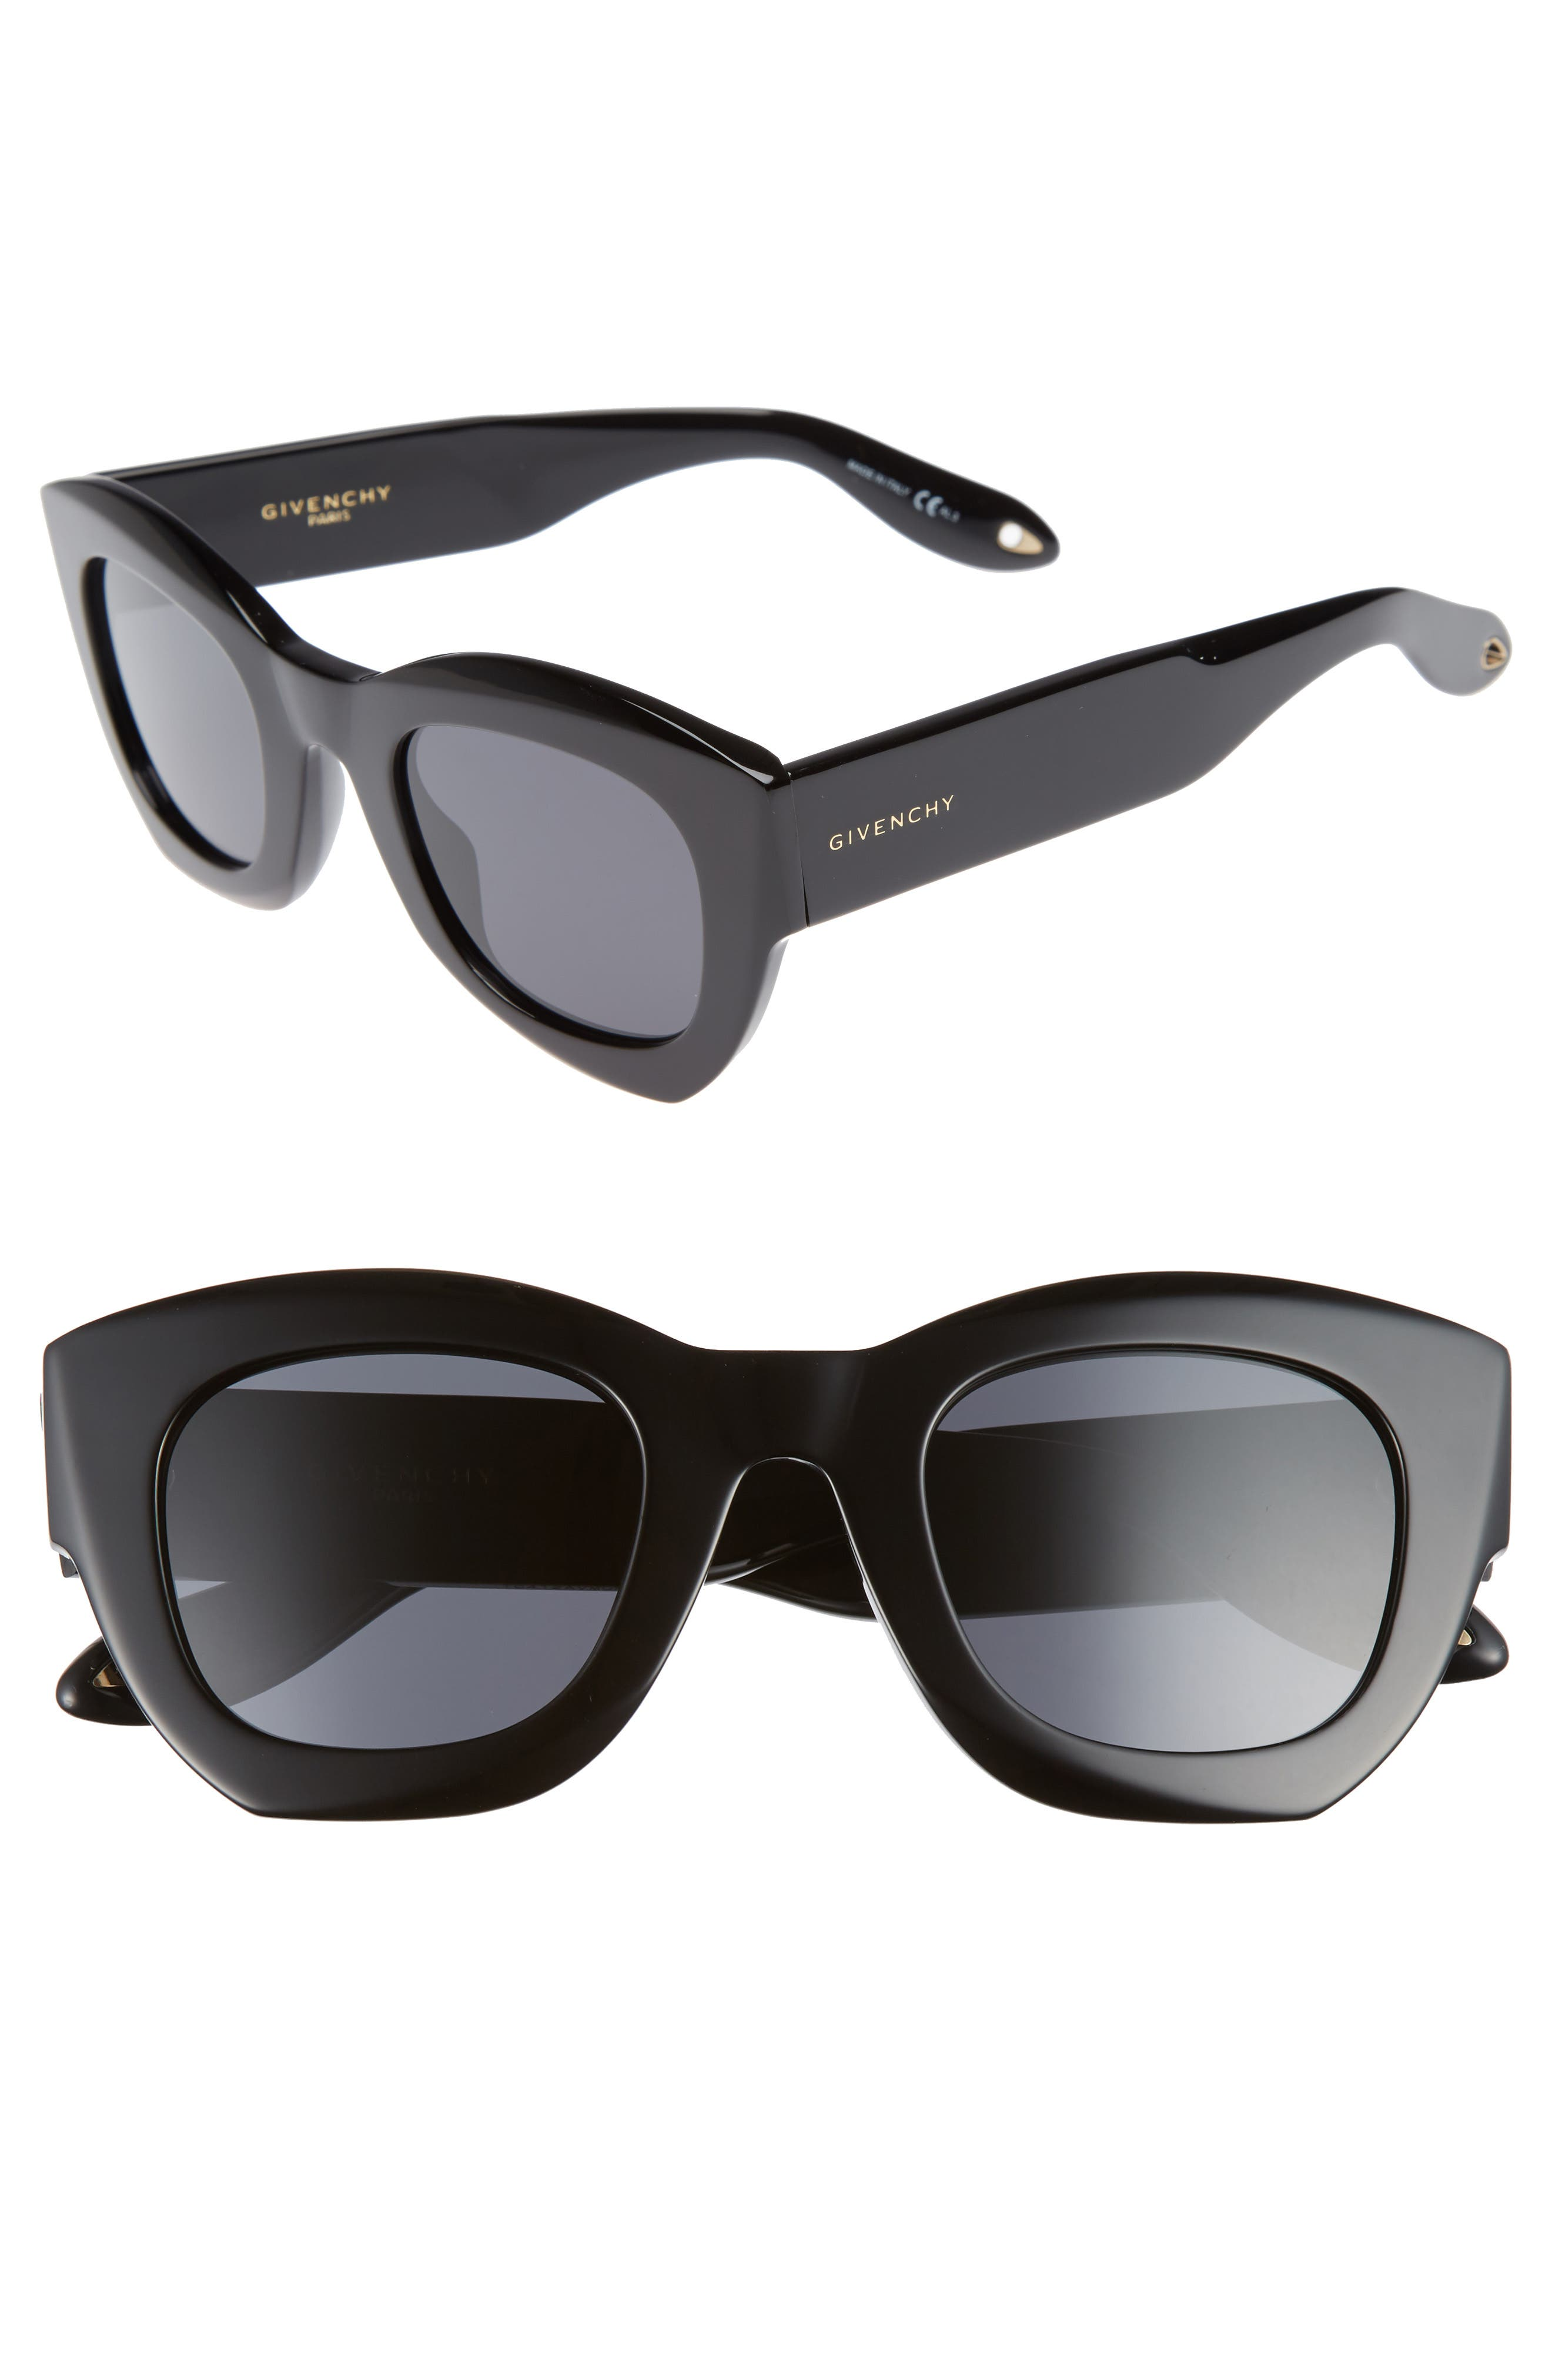 Givenchy 48mm Cat Eye Sunglasses